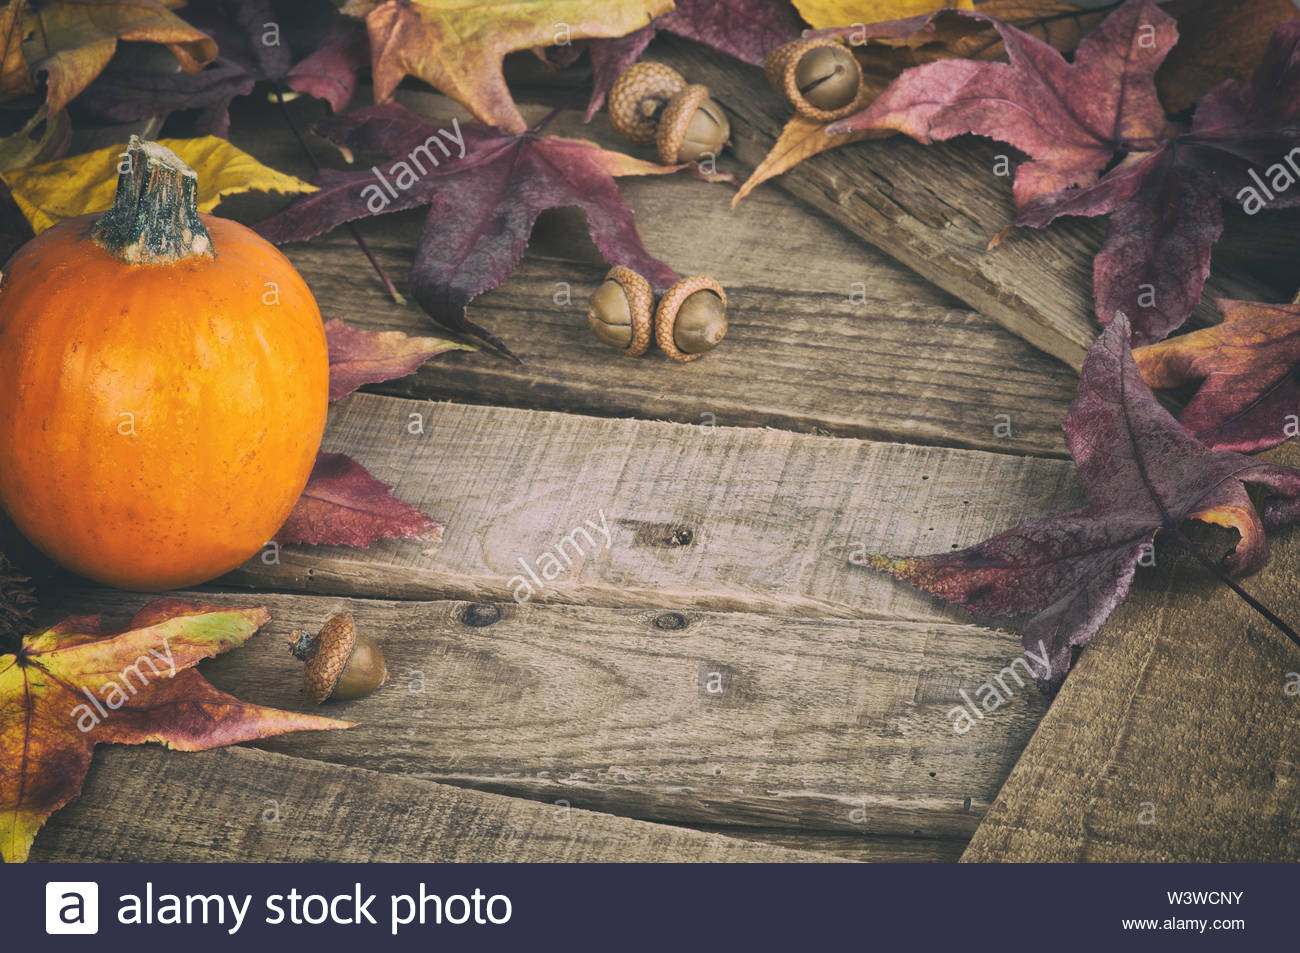 Fall Still Life with Mini Pumpkin and Maple Leaves on Rustic Wood boards as a Thankgiving or Halloween design element with copy space. - Stock Image